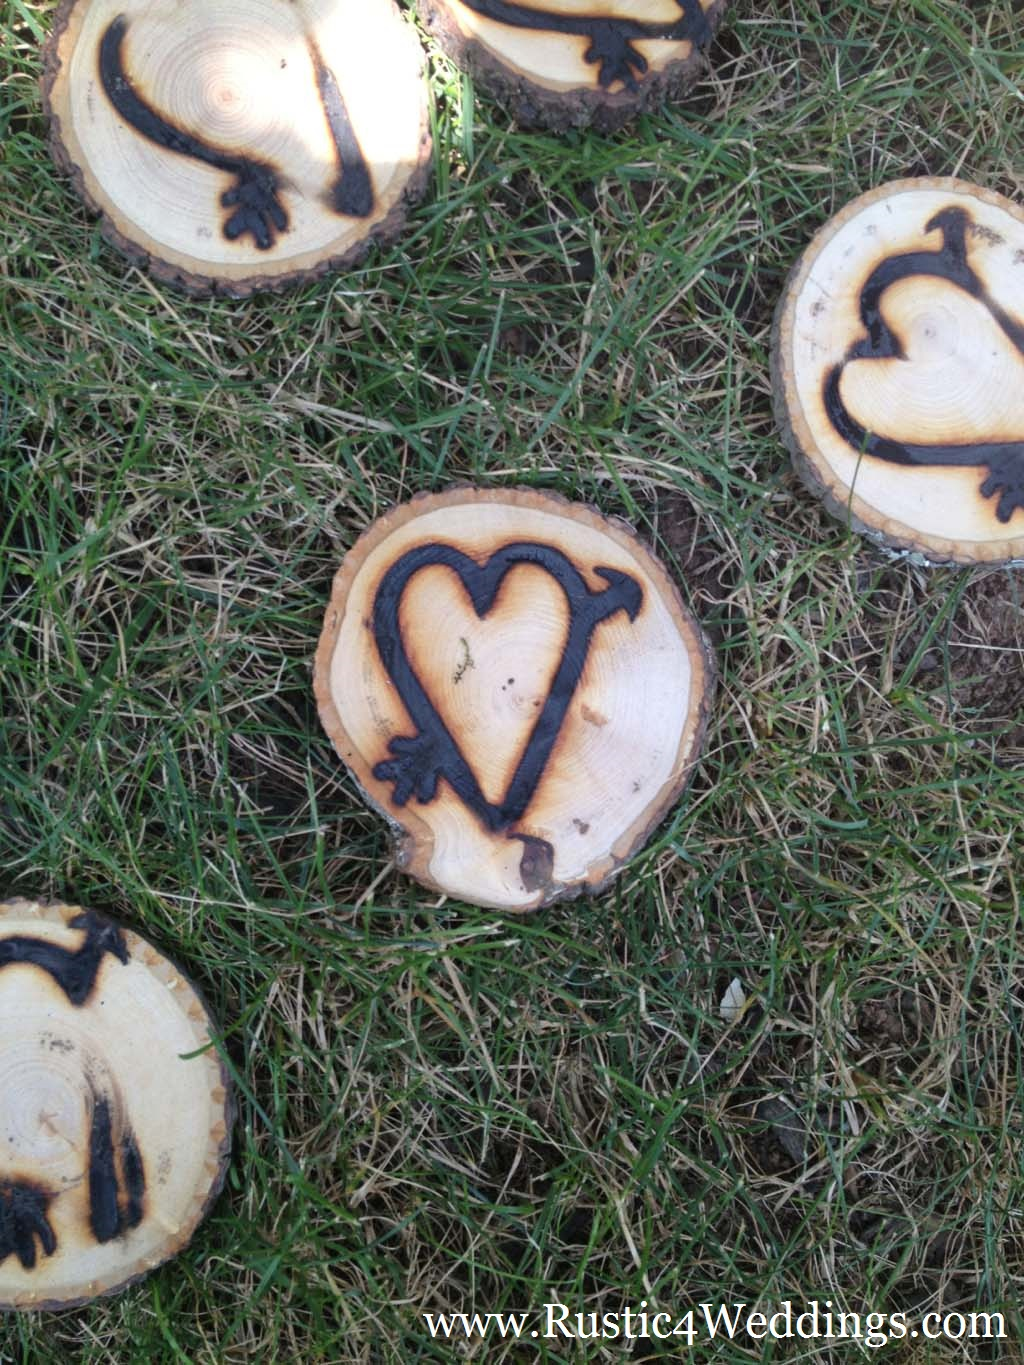 Heart Branded Wood Slices For Rustic Weddings